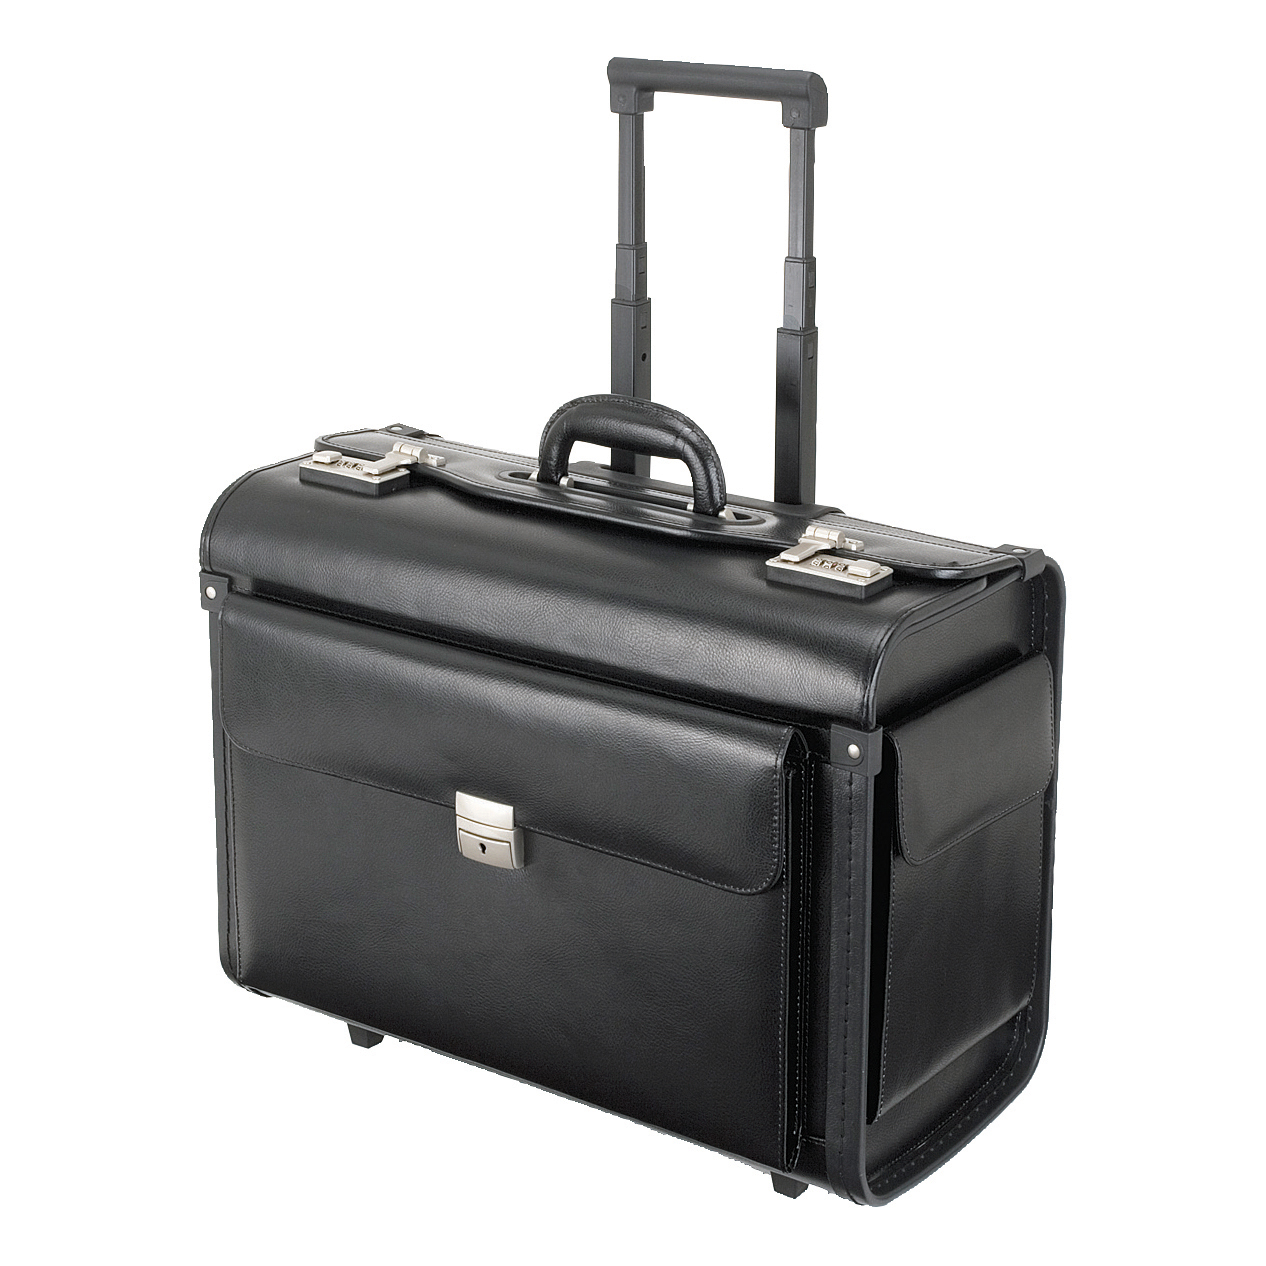 Briefcases & Luggage Alassio Silvana Trolley Pilot Case Laptop Compartment 2 Combination Locks Leather-look Black Ref 92301